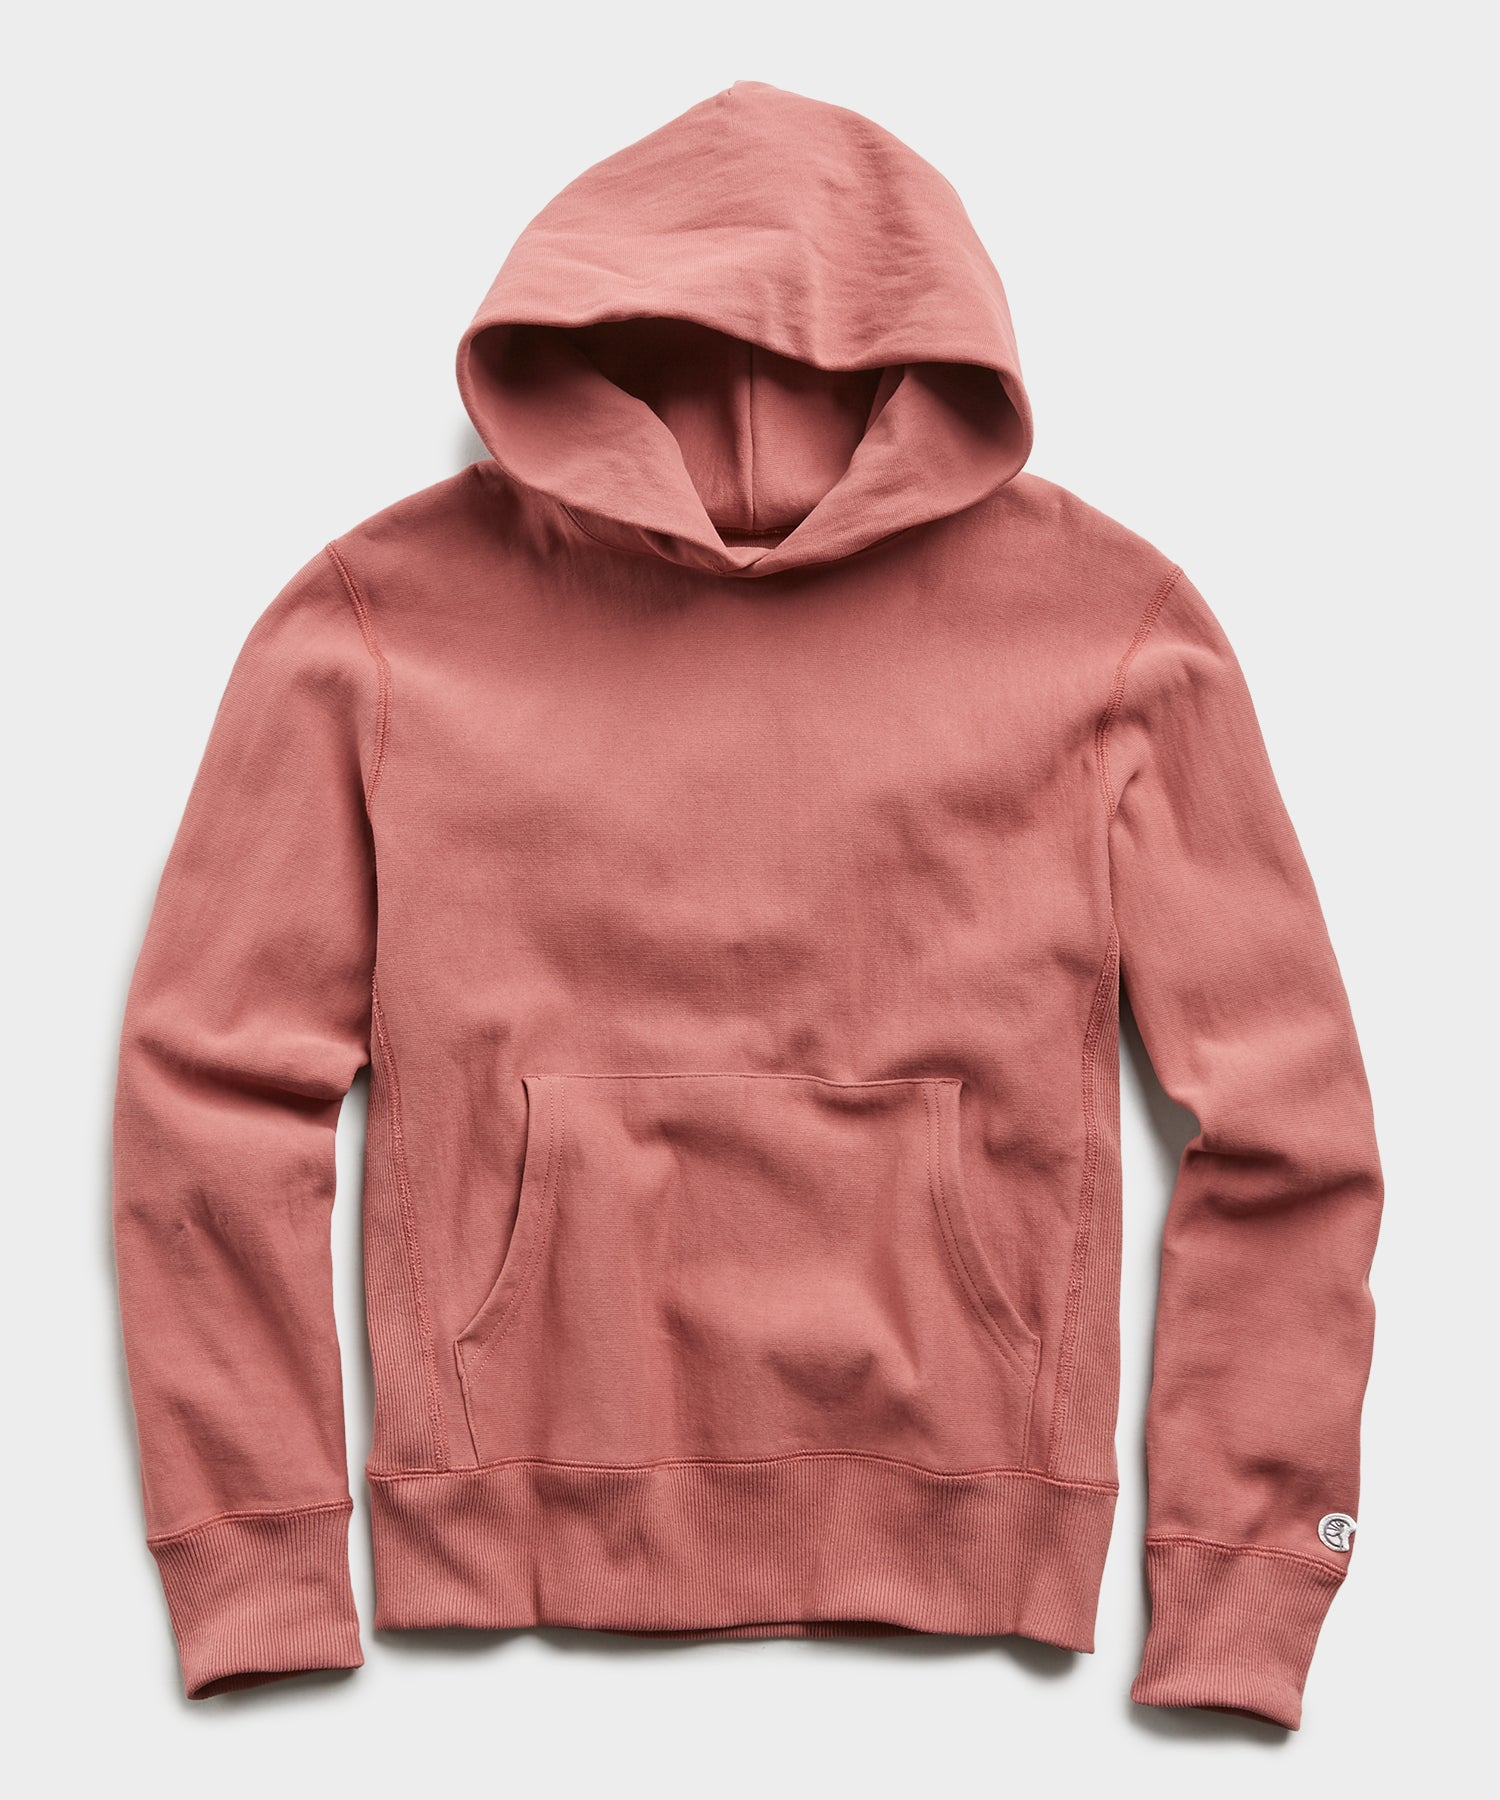 Lightweight Popover Hoodie Sweatshirt in Rosewine